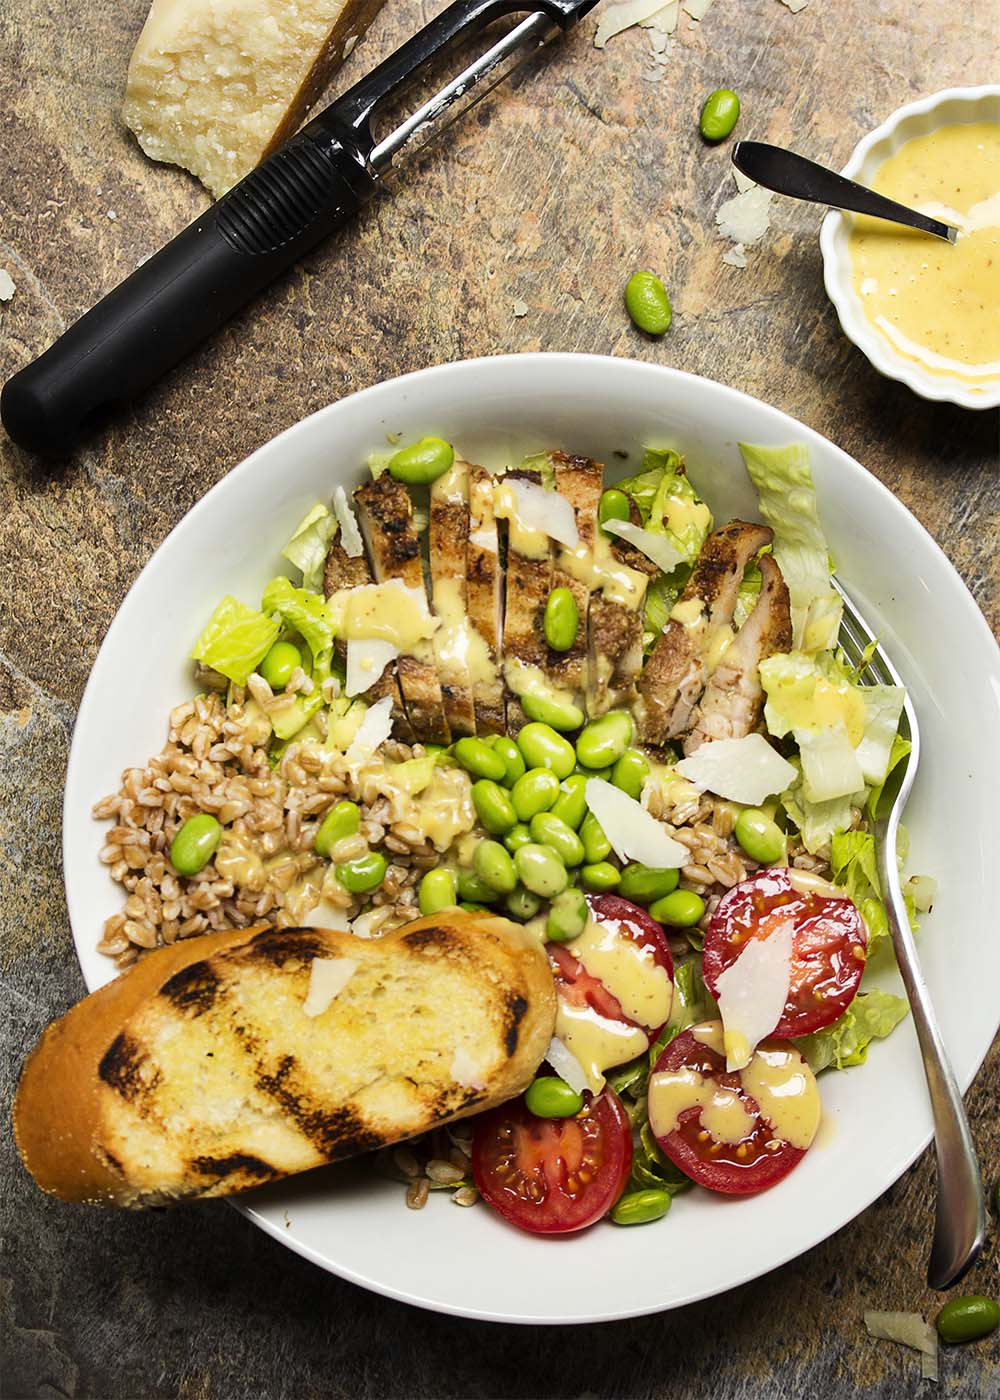 Caesar salad becomes satisfying meal in a bowl with the addition of spicy grilled chicken thighs, farro, tomatoes, and edamame. | justalittlebitofbacon.com